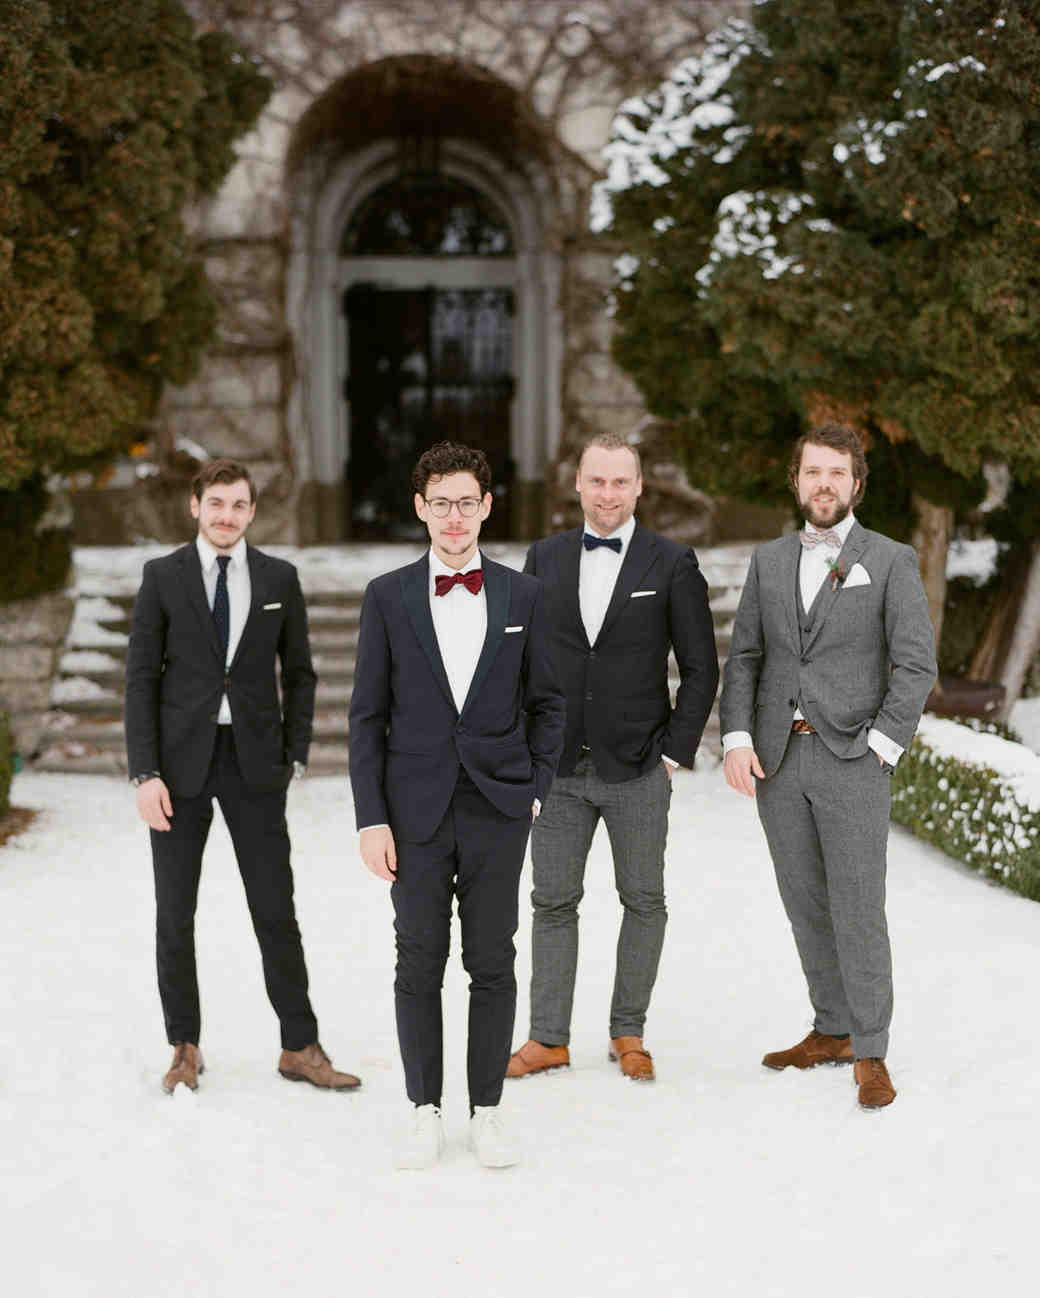 Winter Wedding Guest Outfit Ideas